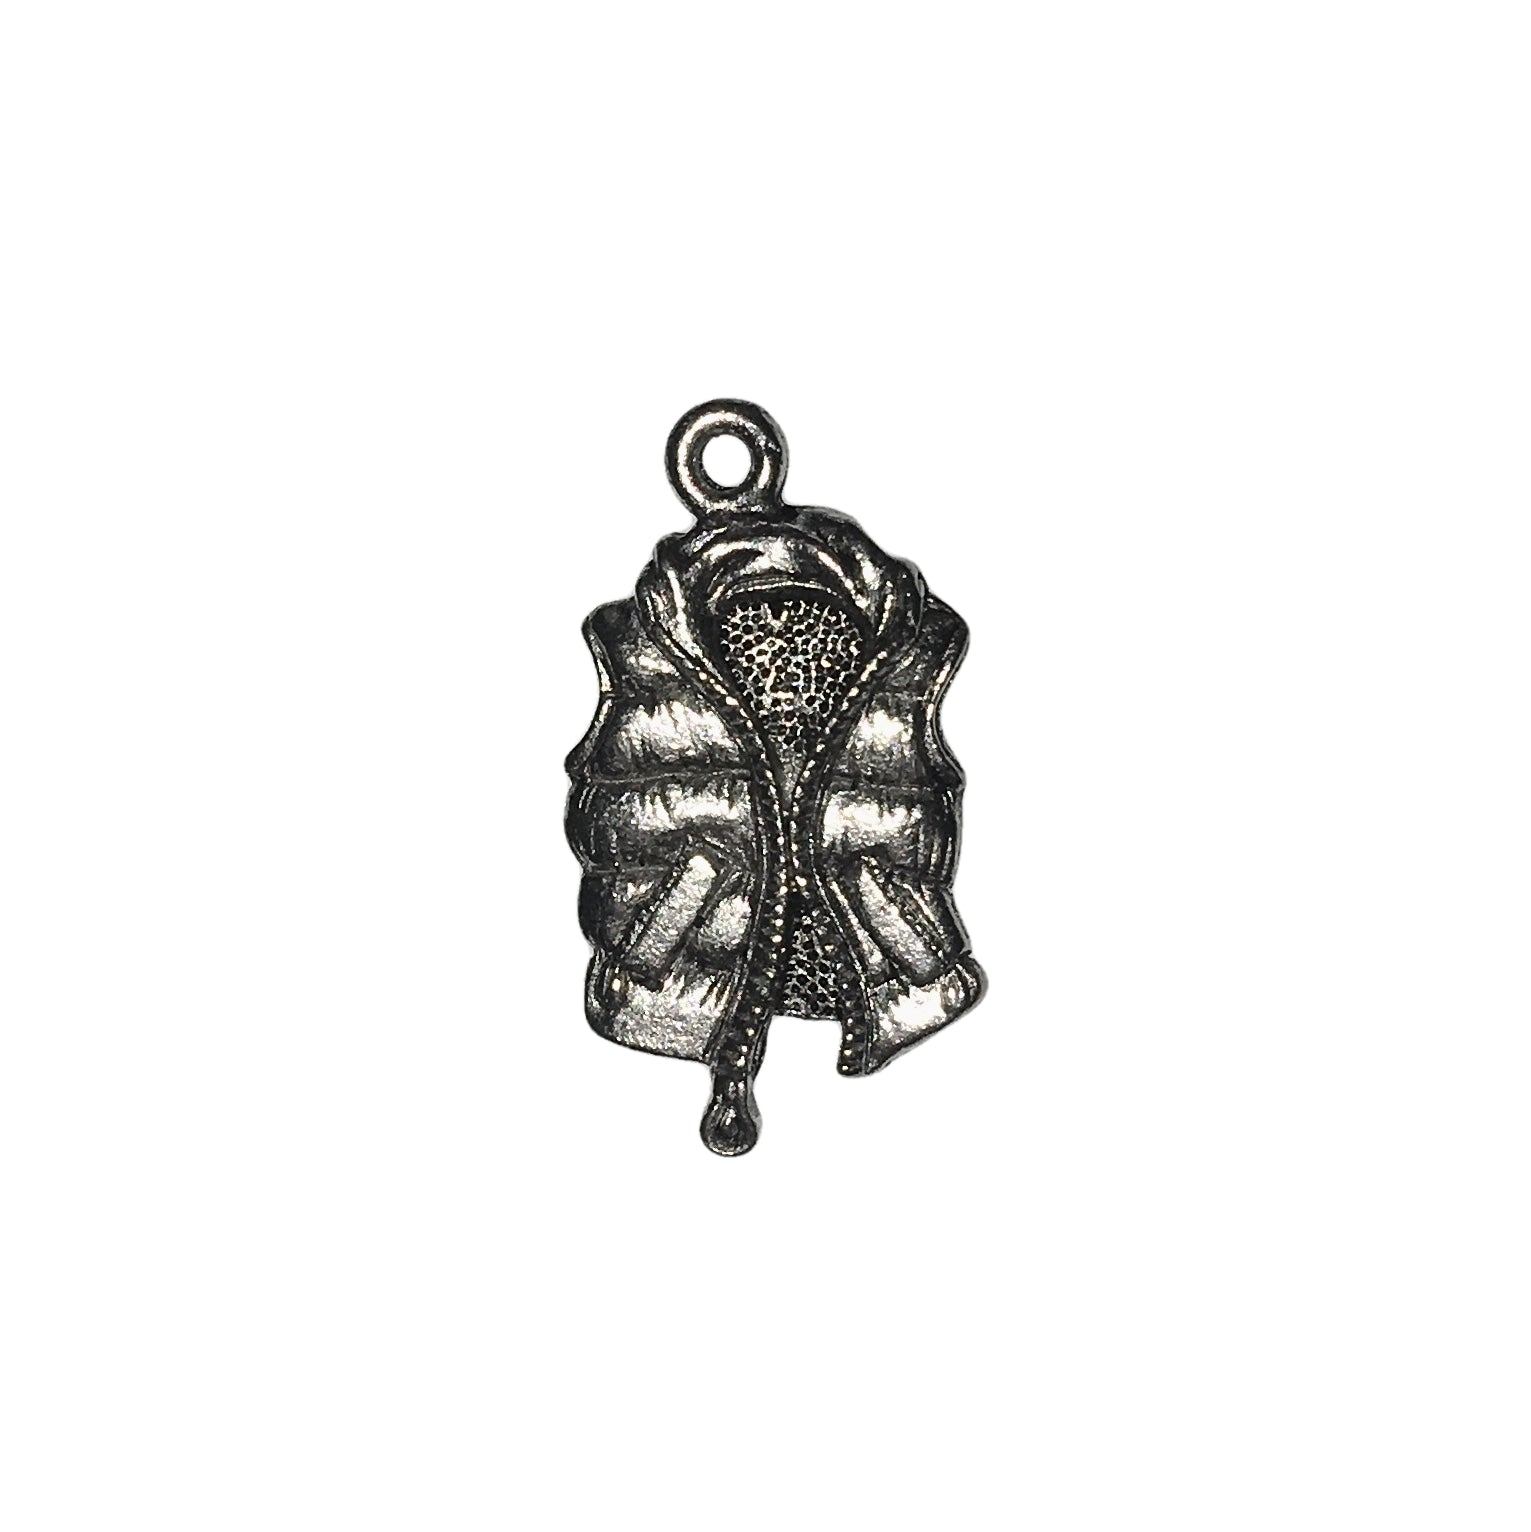 Down Vest Charms - Qty 5 - Lead Free Pewter Silver - American Made